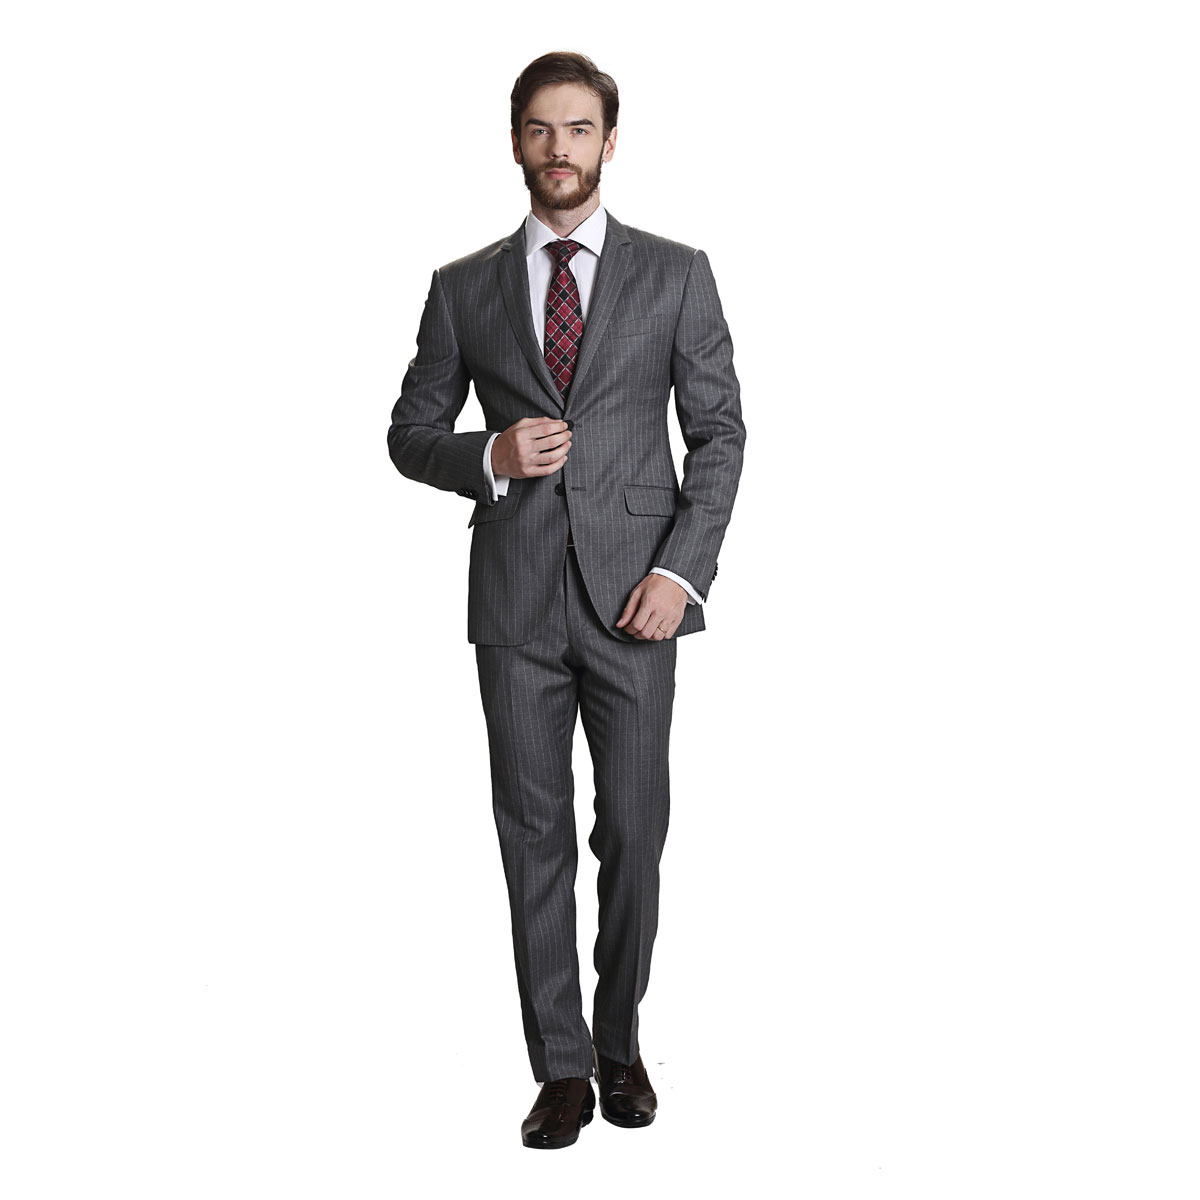 Joys Forever Grey Stripe Suit - Best Bespoke Suits. Premium Custom